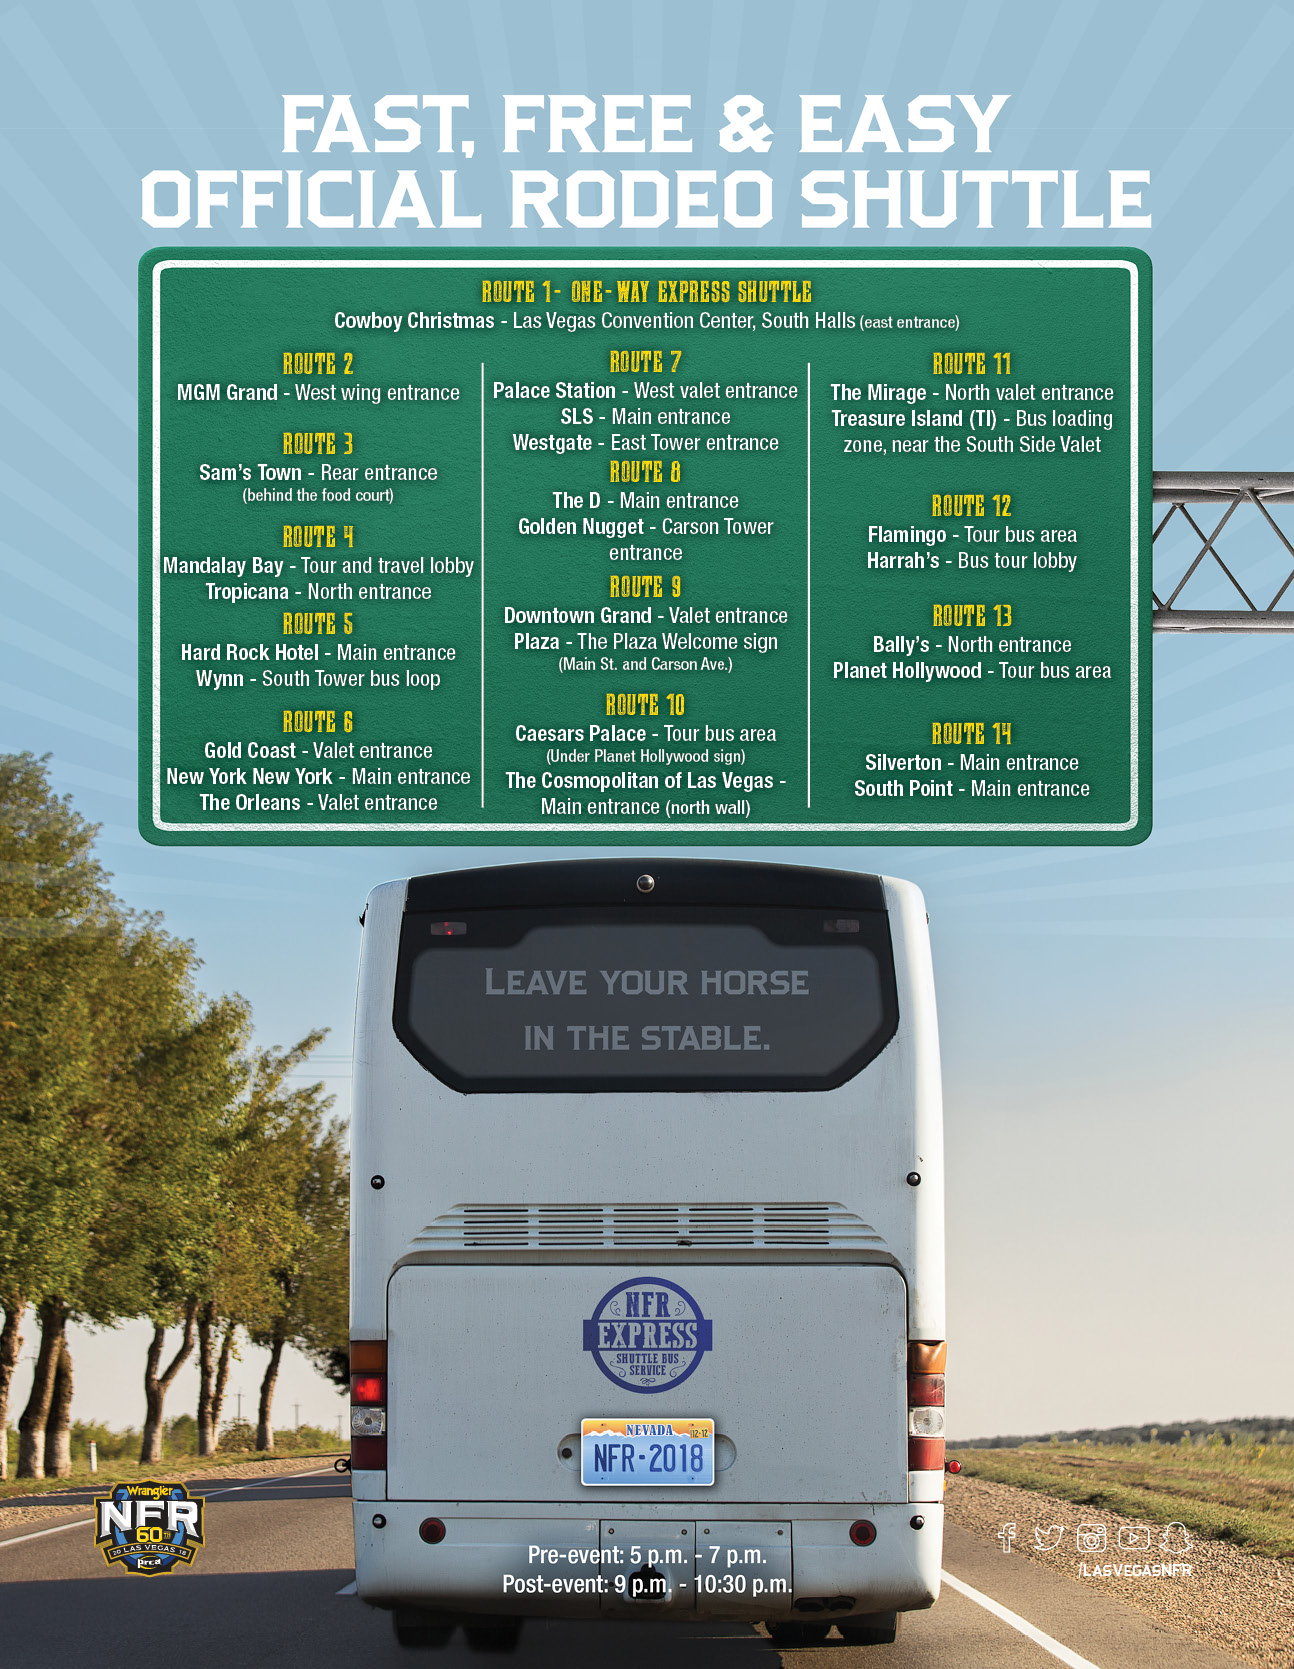 Nfr Express Shuttle Bus Service The Official Nfr Experience